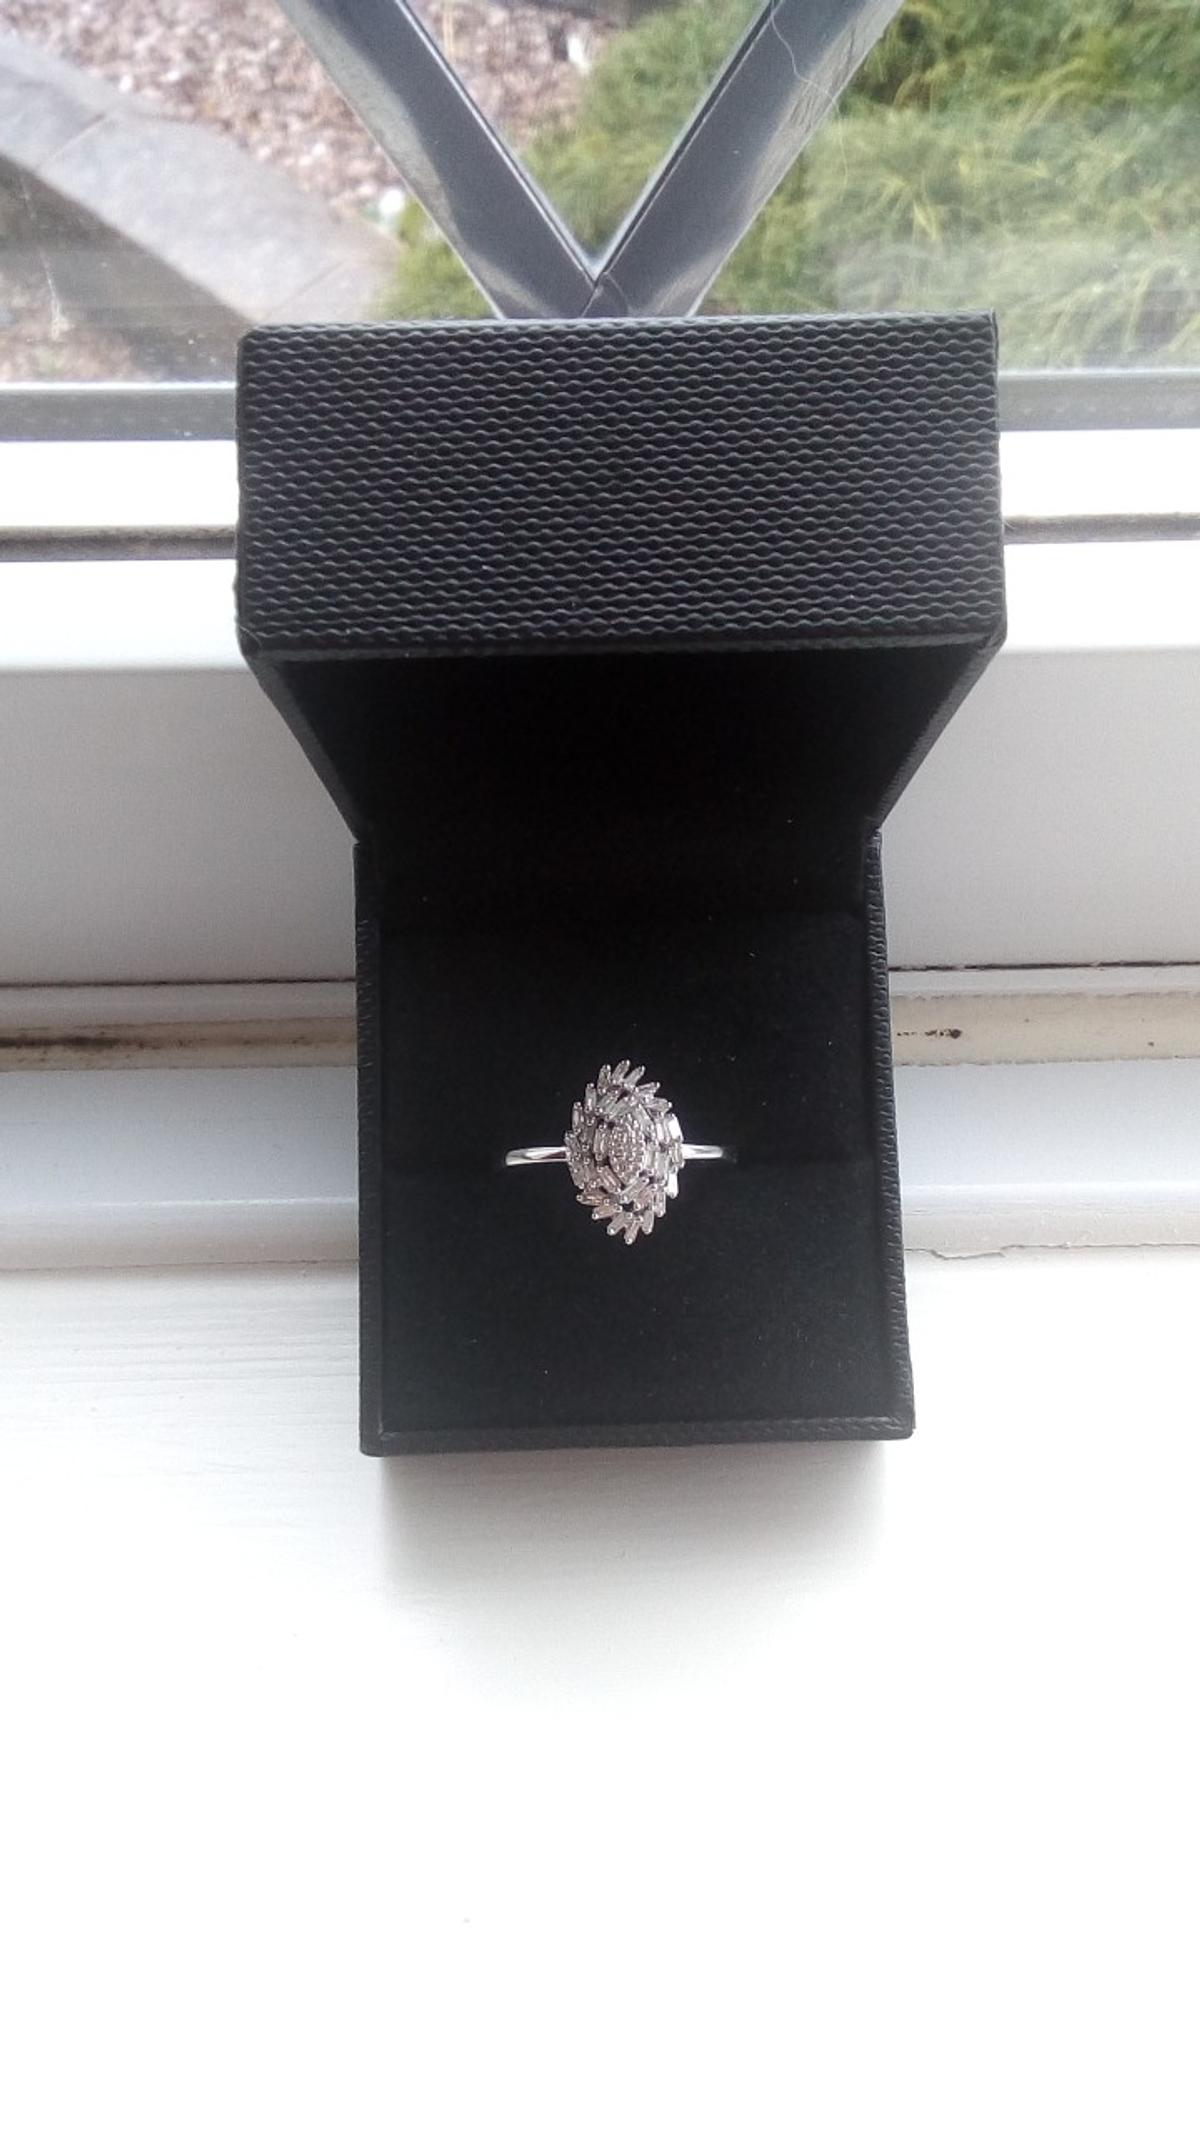 white gold bagette diamond ring 1/4 of a carrot has 32 bagette diamonds size n- o you can have it sized up or down would be a lovely engagement ring bought for £500.